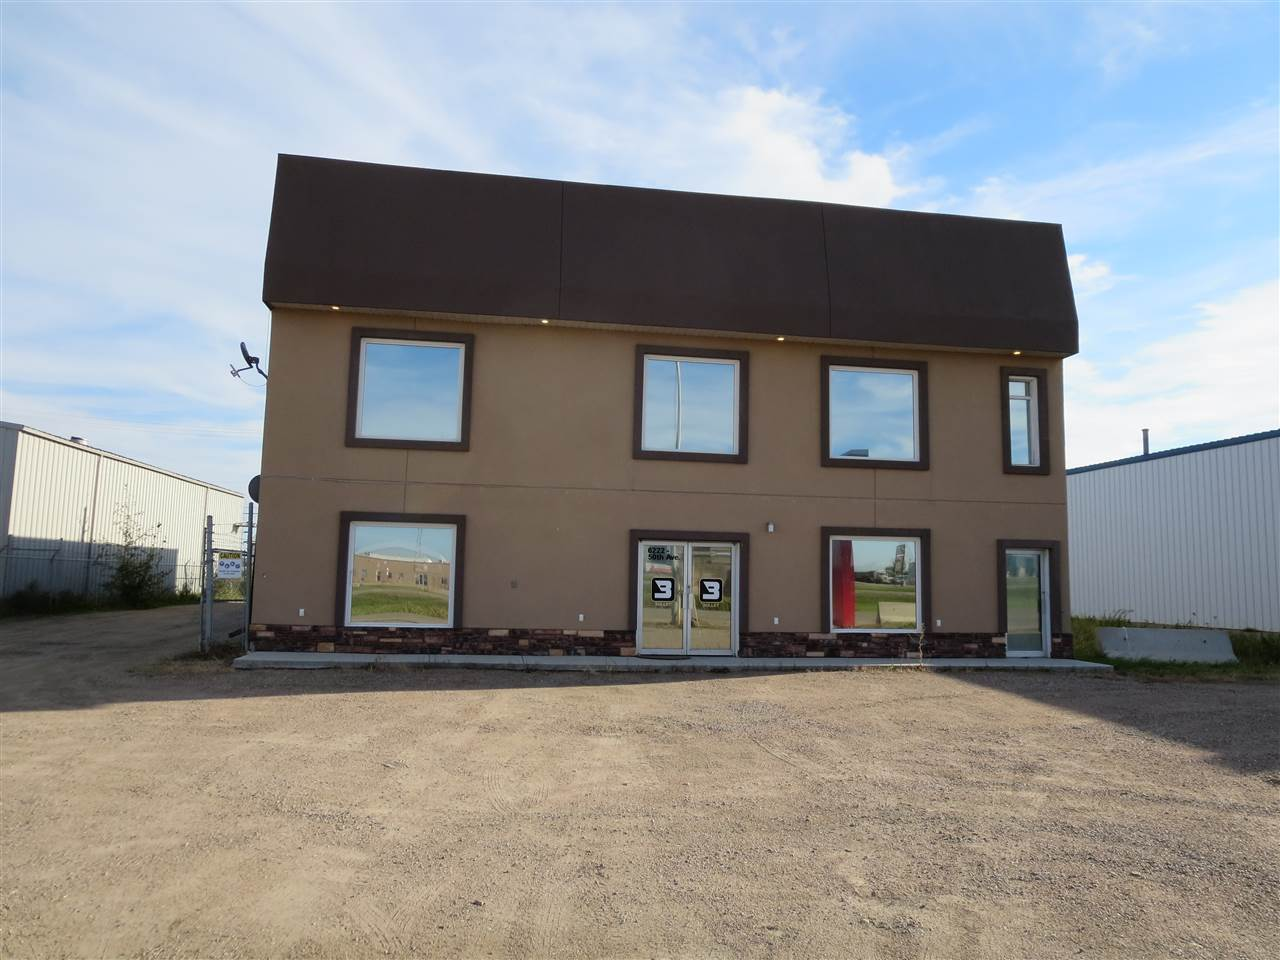 Prime location, prime opportunity! This 6000sq ft shop is located on a double lot totaling nearly 3/4 of an acre, on the west end of Bonnyville has great exposure to Hwy 28 incoming and outgoing traffic. Main level offers a welcoming front reception area, 3 office spaces and a kitchenette, while upstairs has a board room, 4 more office spaces, kitchen, and a 3pc bathroom. The well-situated 50'x70' shop space features radiant heat, tin lined interior, concrete floors, two 18' high x 14' wide overhead doors, floor drains, and a mezzanine for extra storage. Huge gravel yard is fully fenced and offers drive through access. Take advantage!